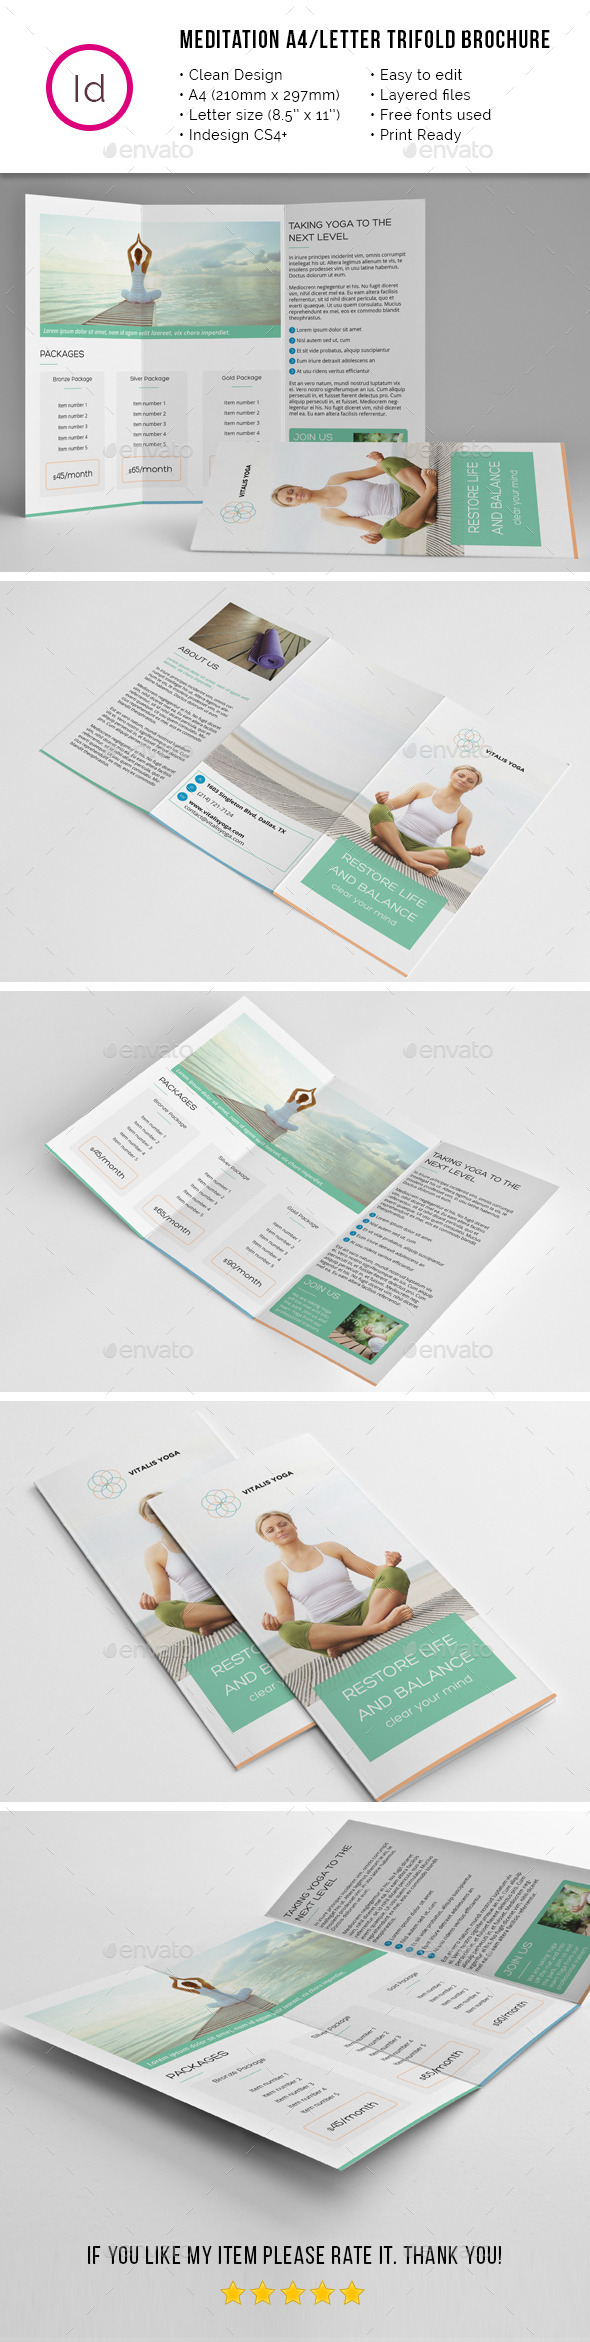 Yoga Meditation A4 / Letter Trifold Brochure - Corporate Brochures